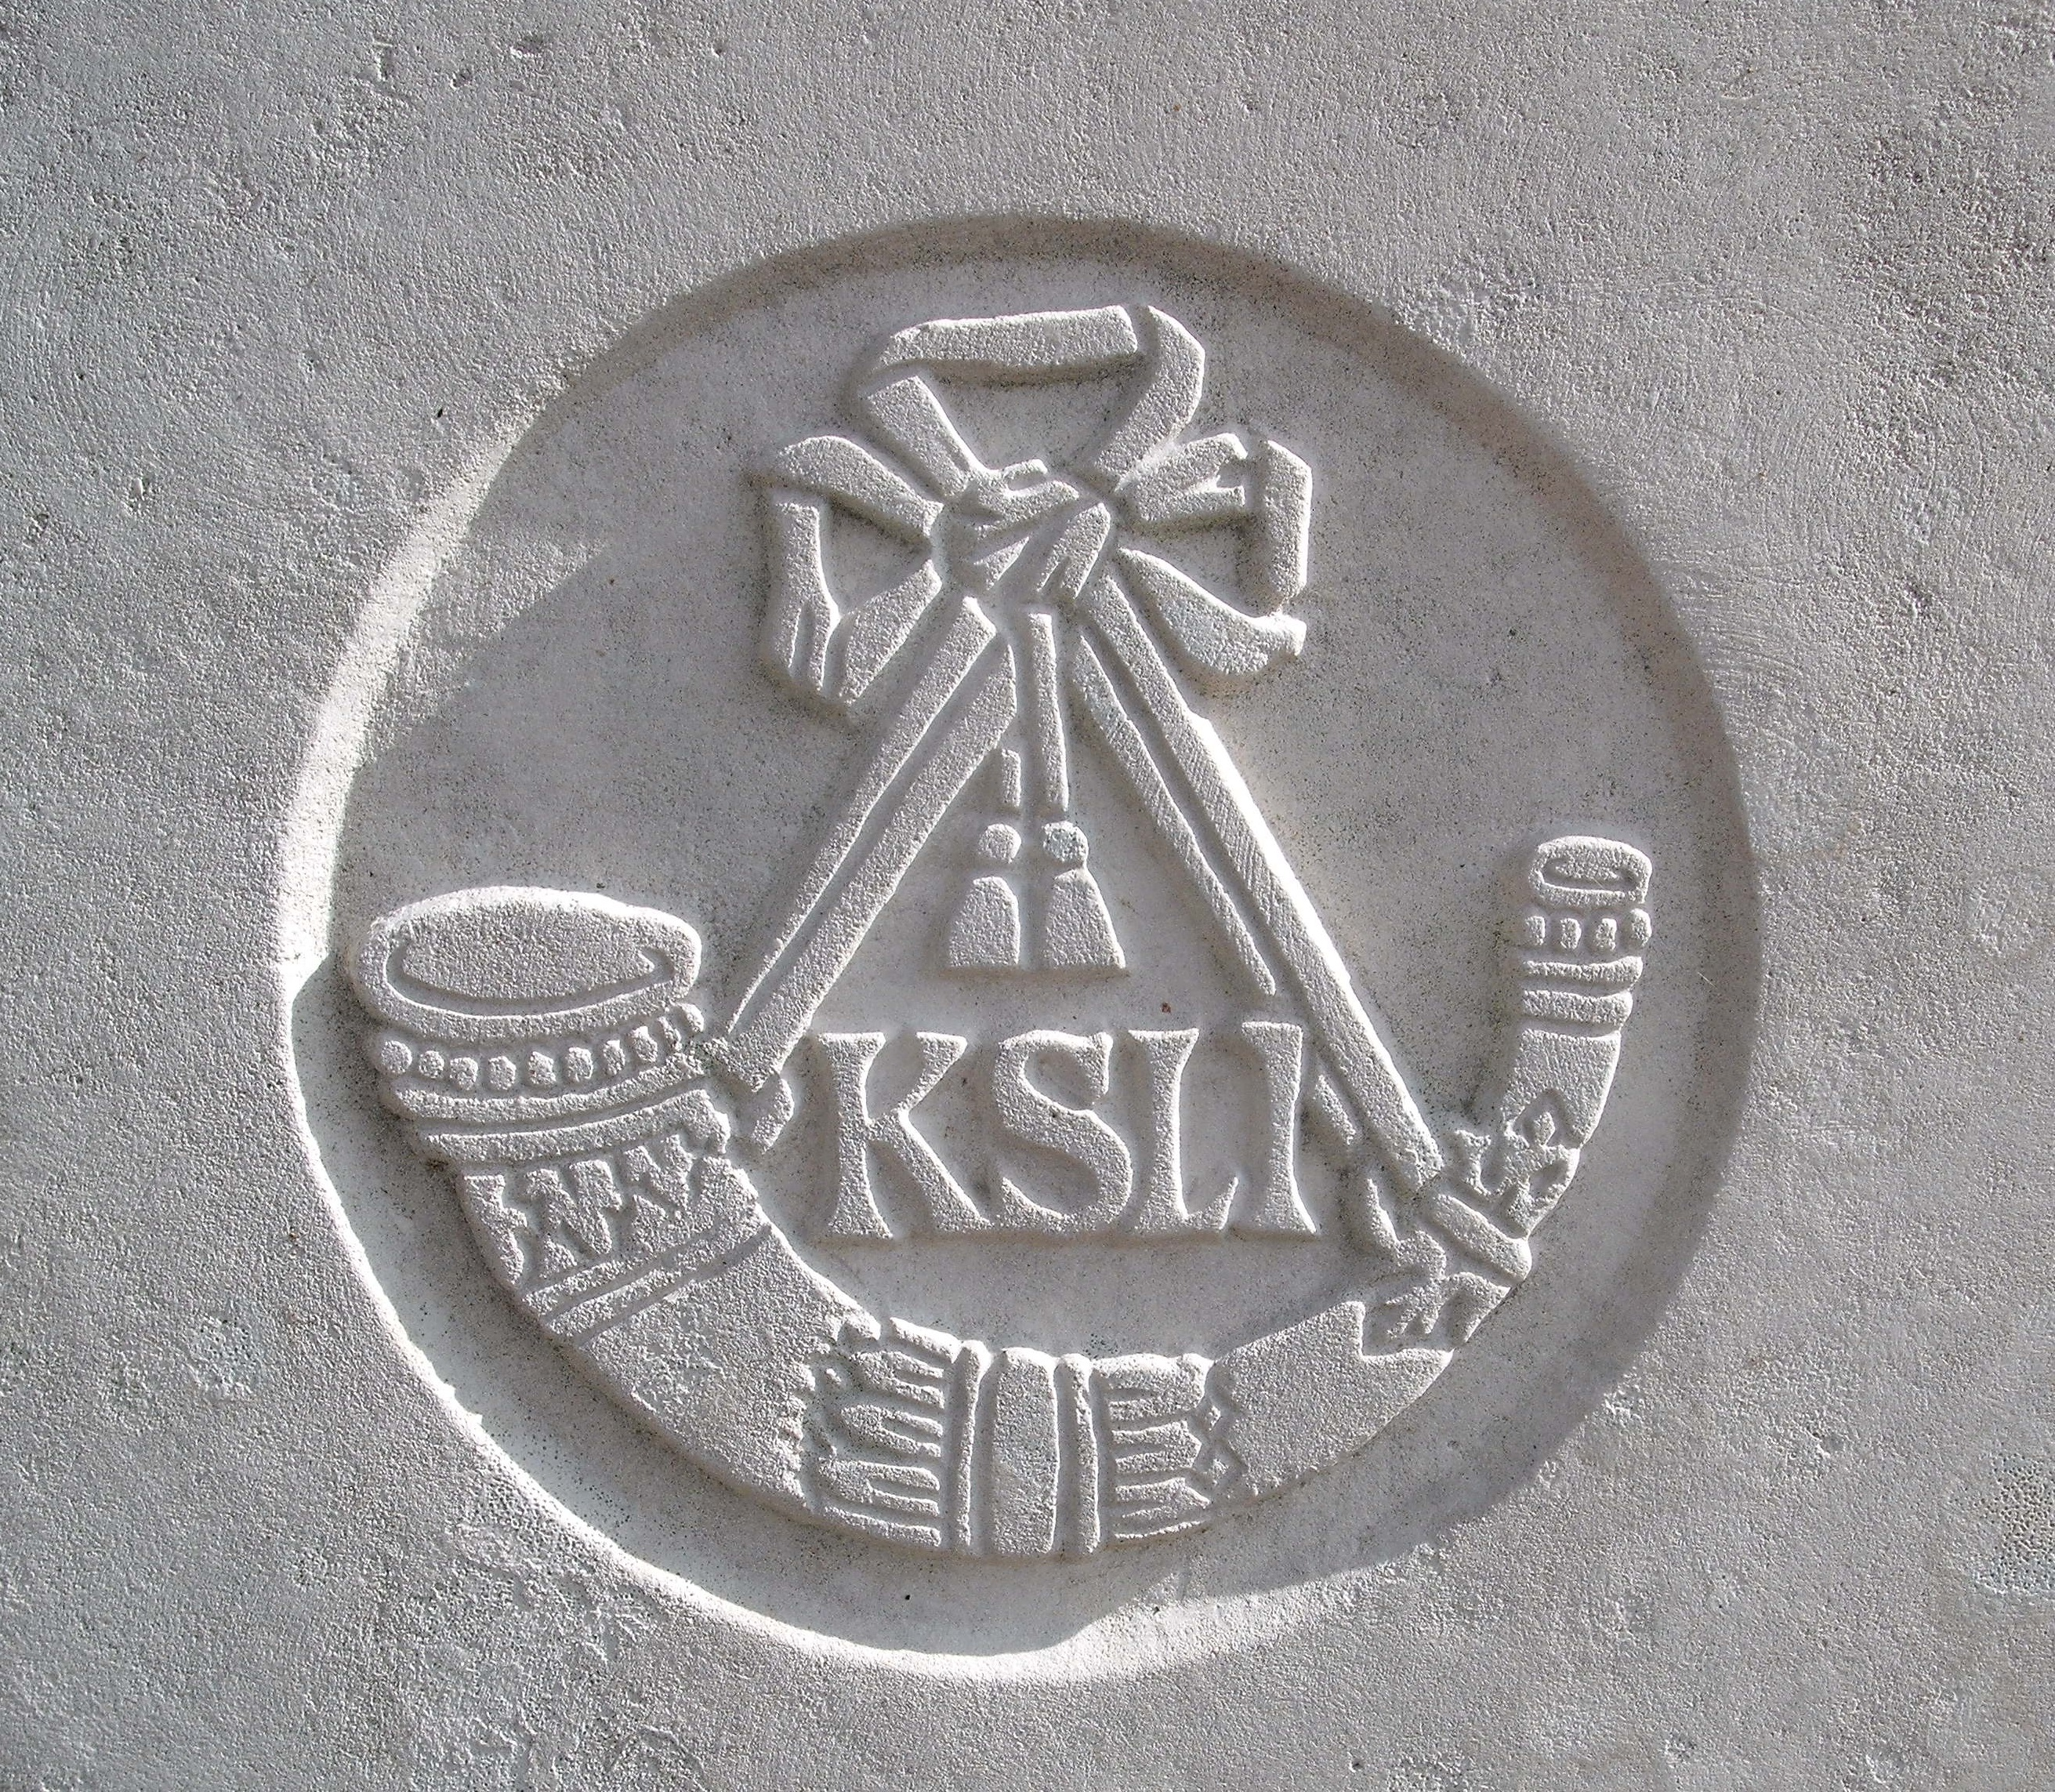 Capbadge of the Kings Shropshire Light Infantry